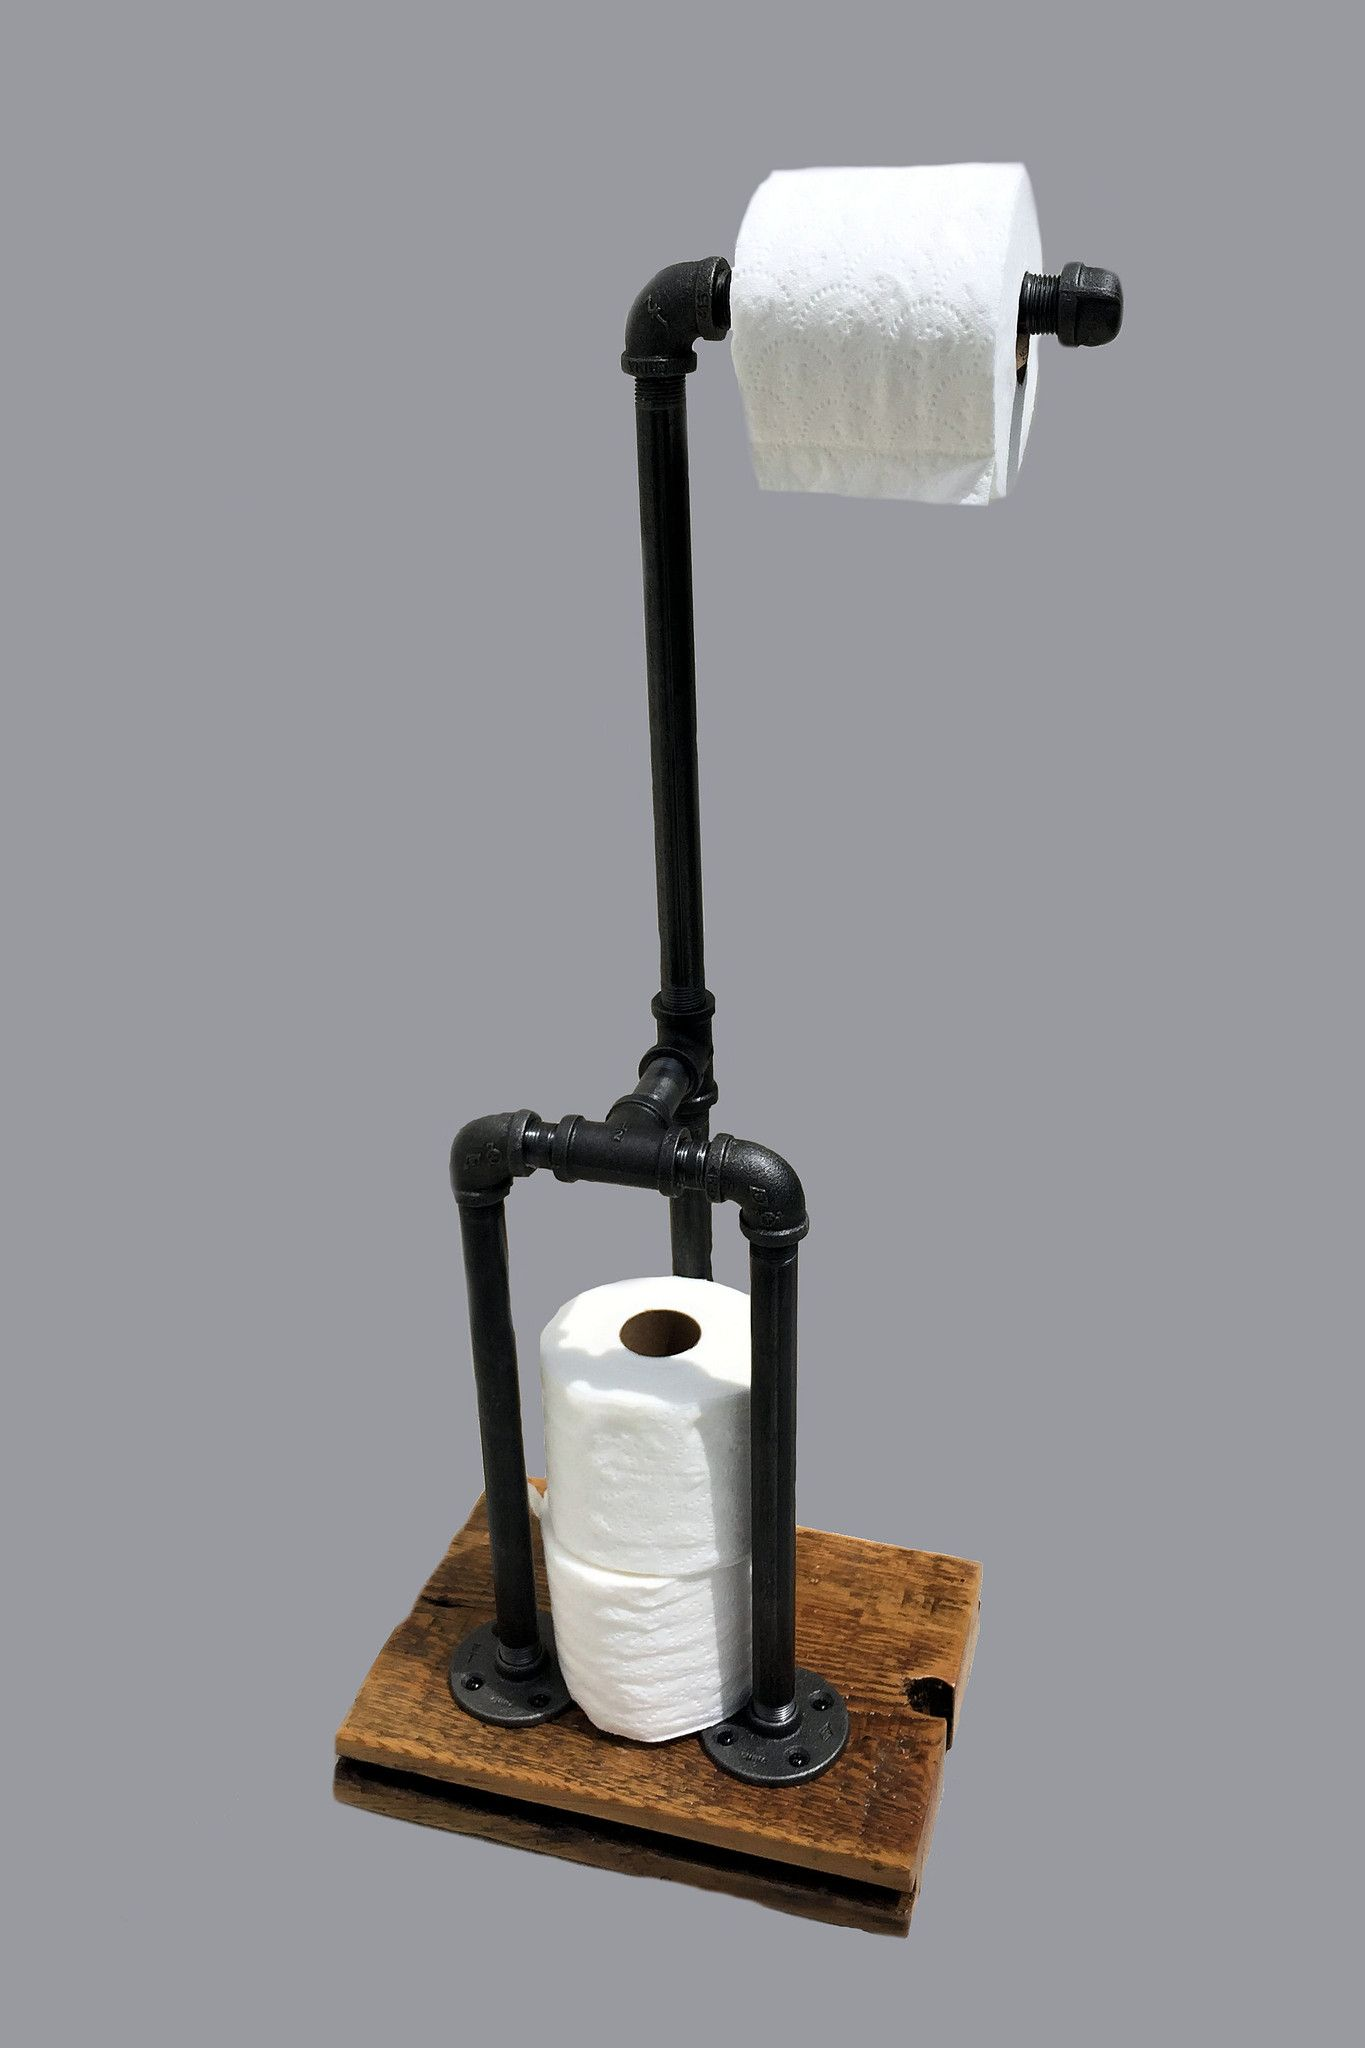 Stand Toilettenpapierhalter Toilet Paper Holder Stand Projects To Try